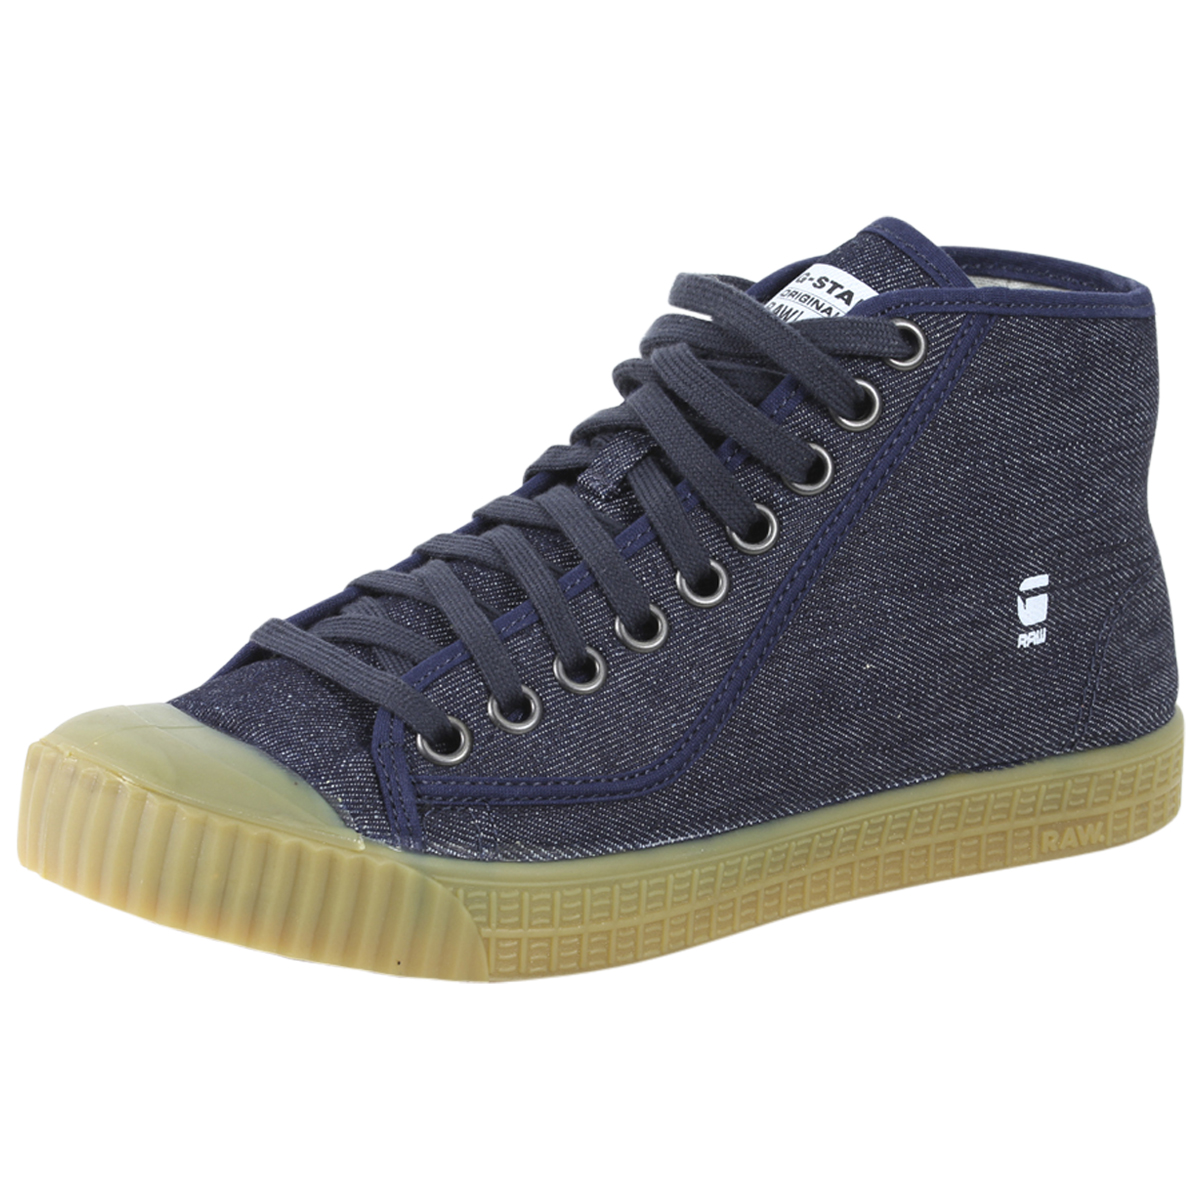 Details about G Star Raw Men's Rovulc Roel Mid High Top Sneakers Shoes